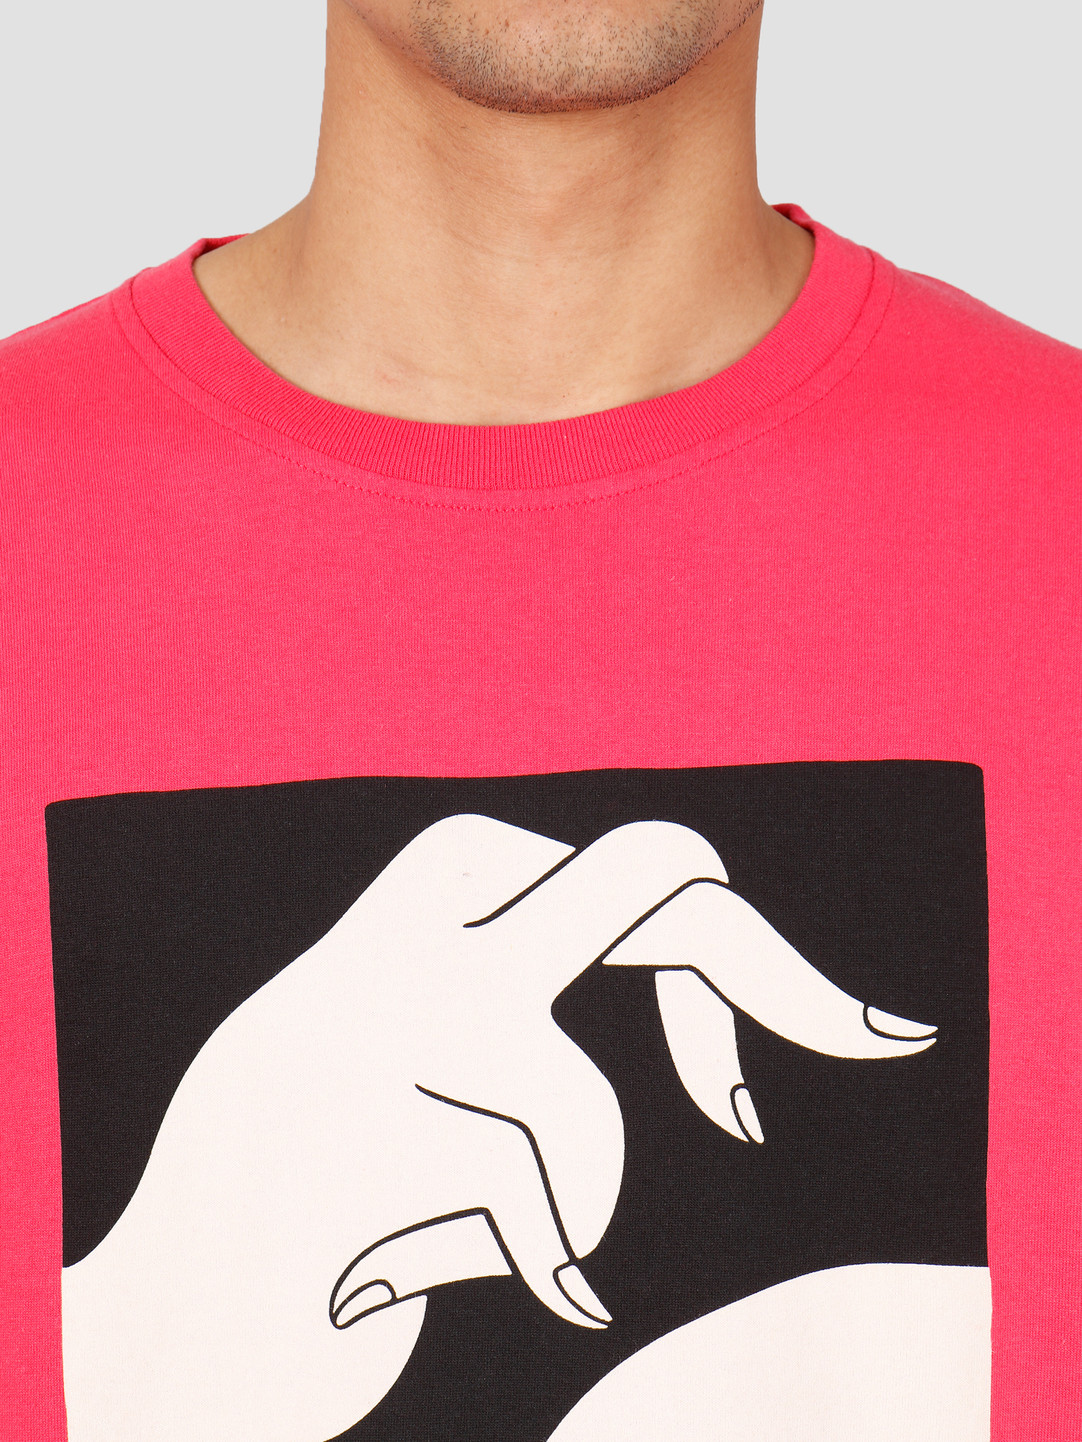 By Parra By Parra In A Void T-Shirt Coral Red 43080